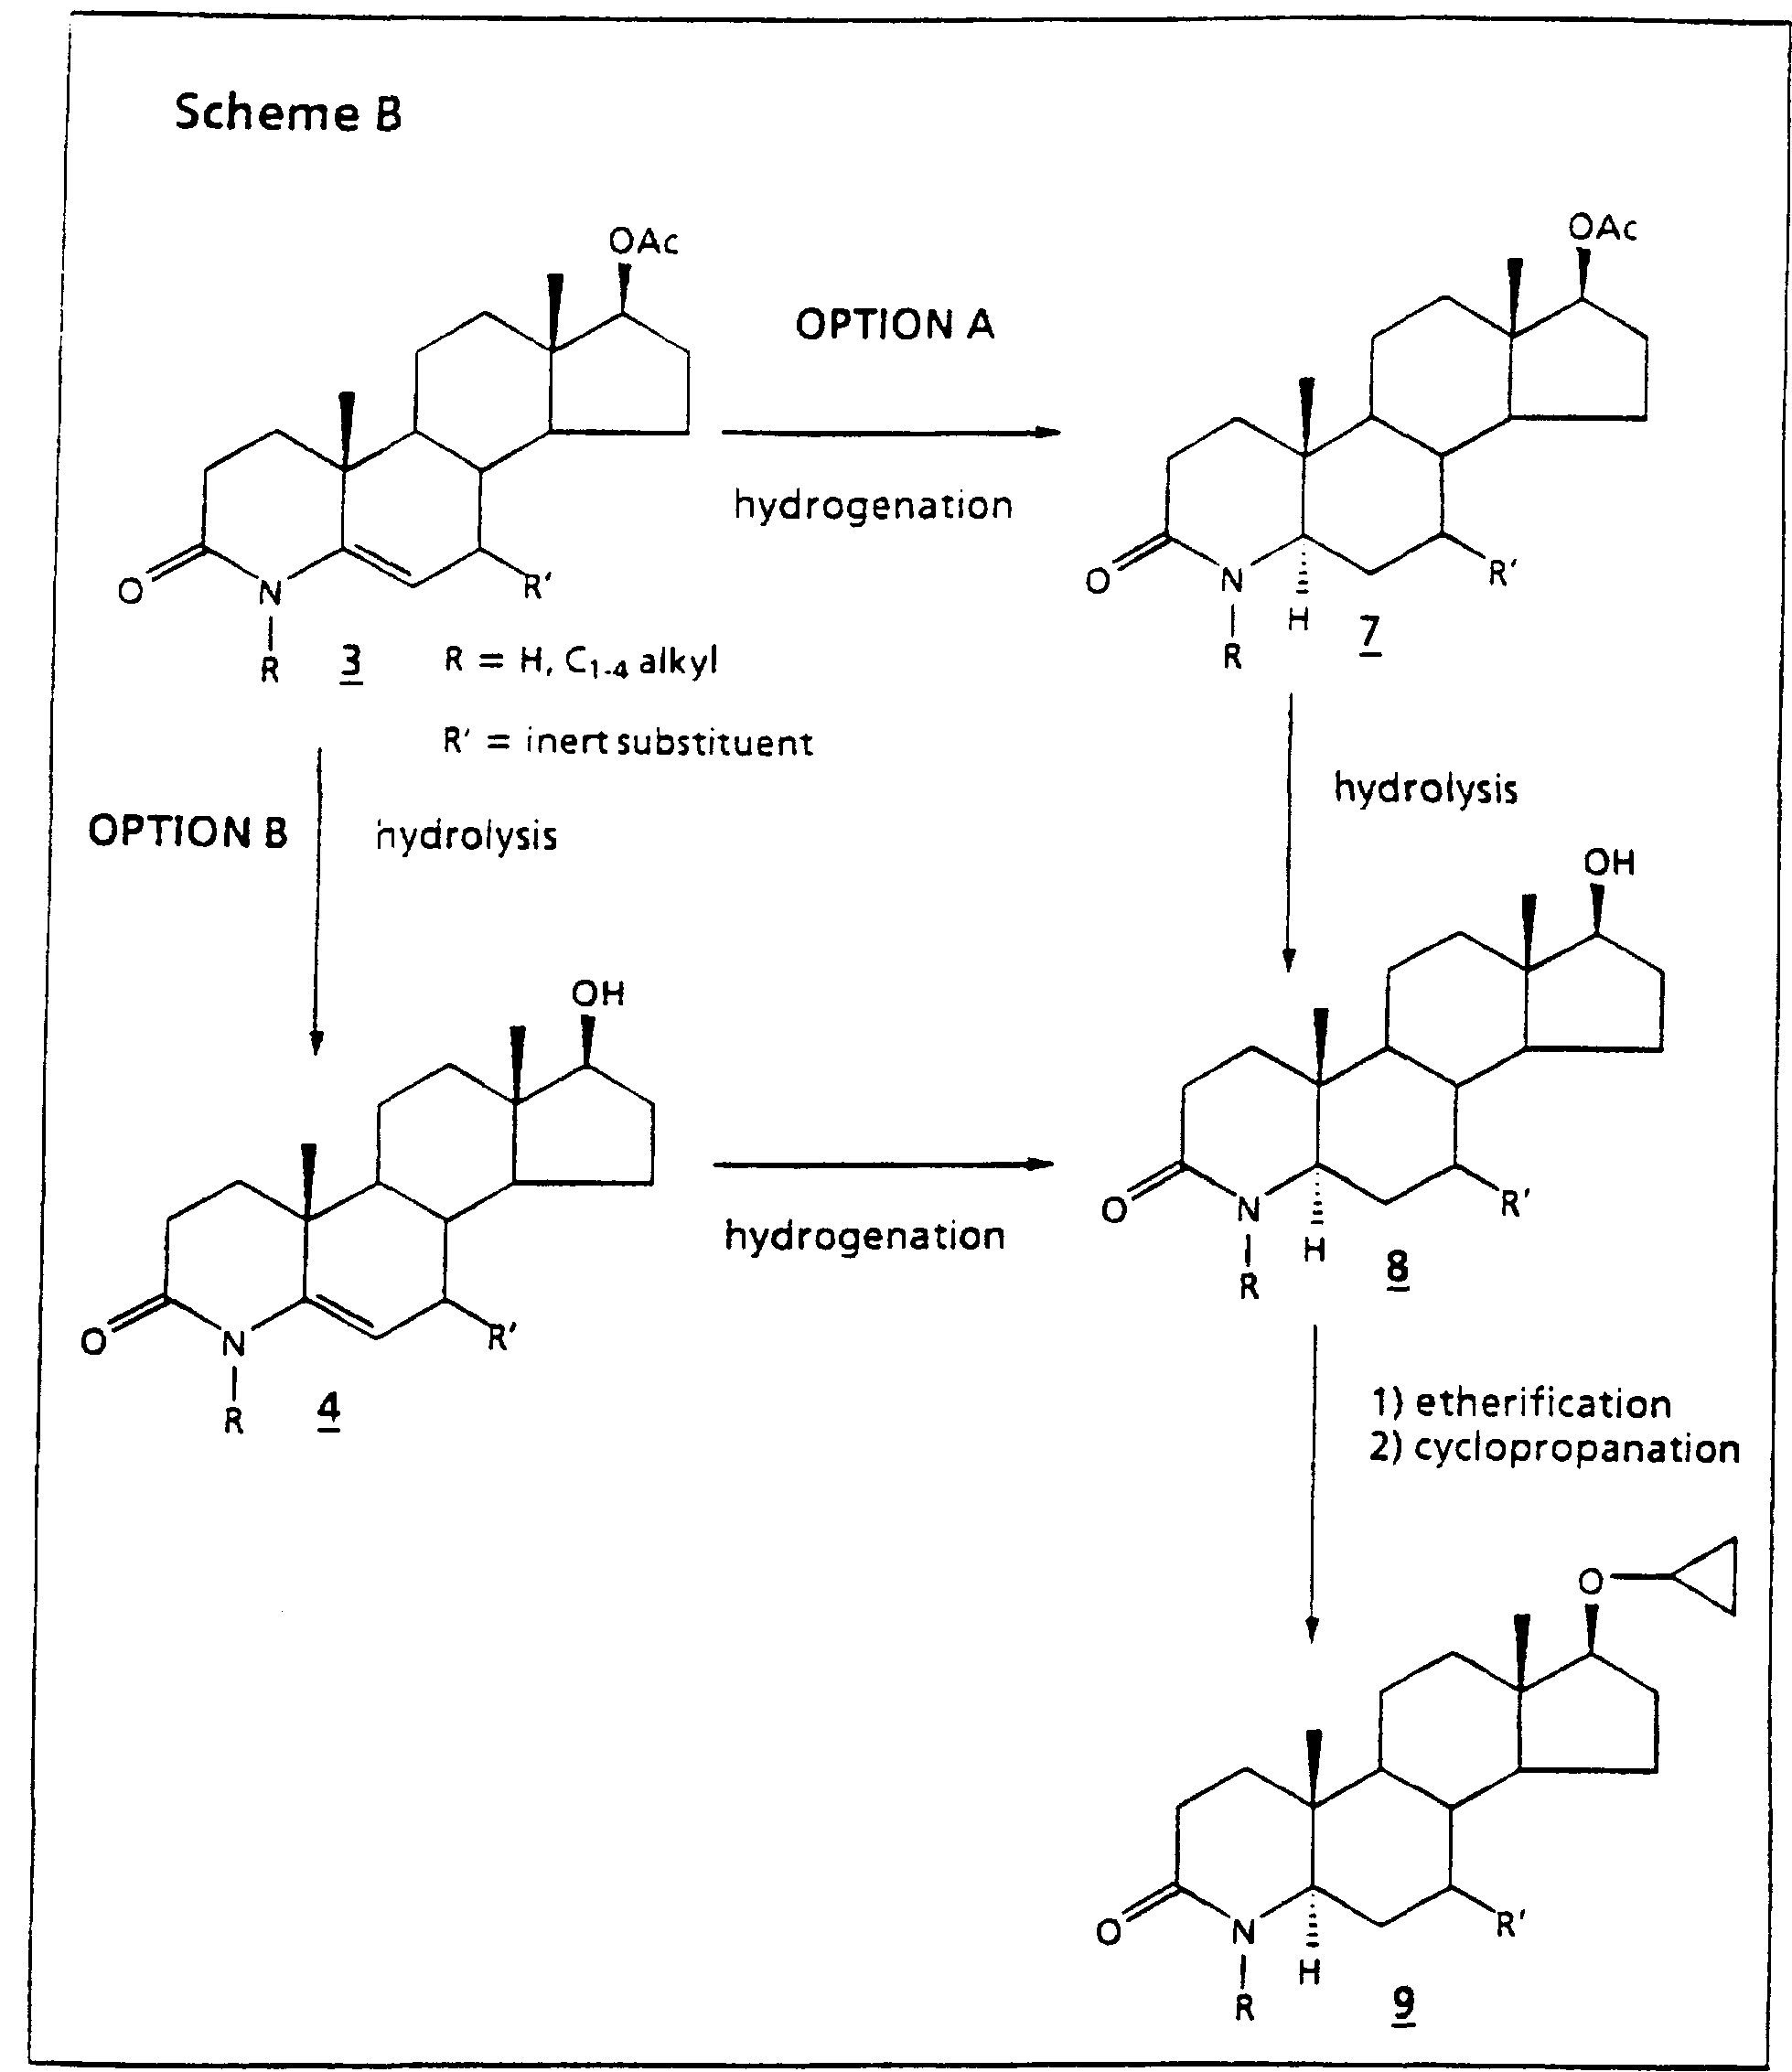 hydroxylation of steroids at carbon 21